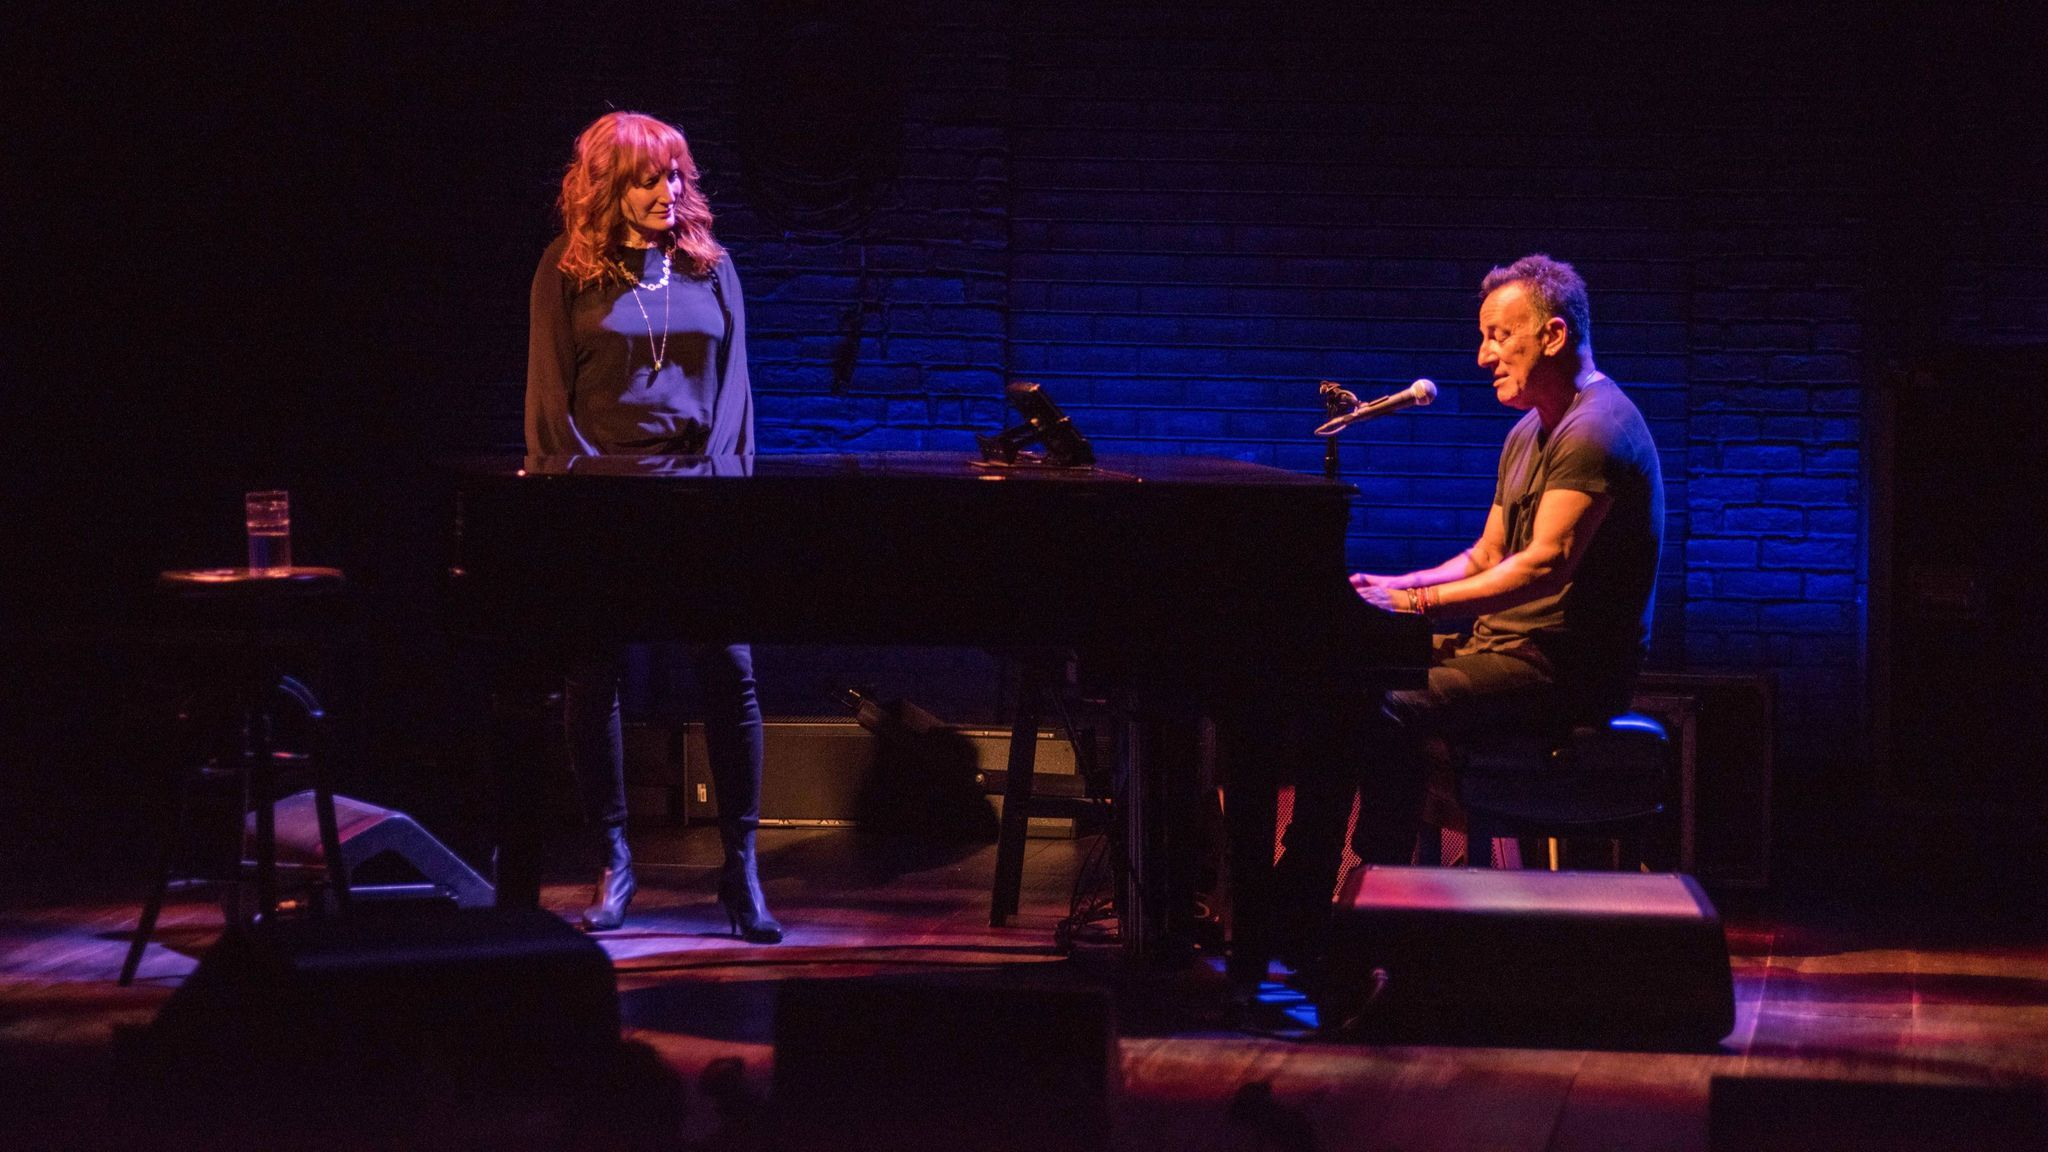 Patti Scialfa Springsteen joins Bruce onstage for two numbers.